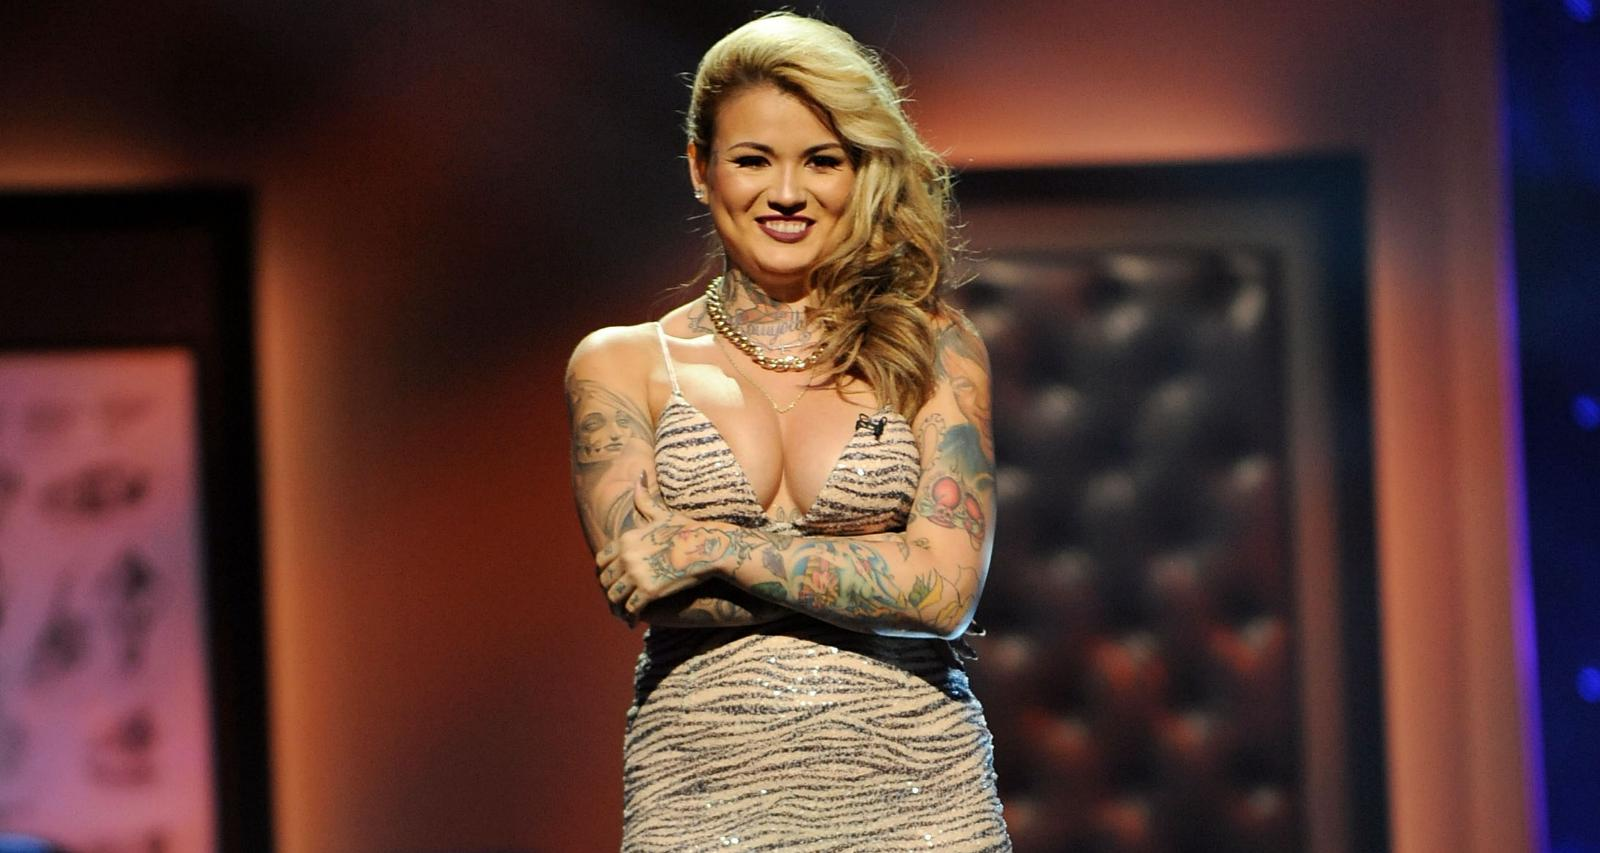 Tatu Baby Wiki: Meet The Ink Master Angel Who Joins Cartel Crew